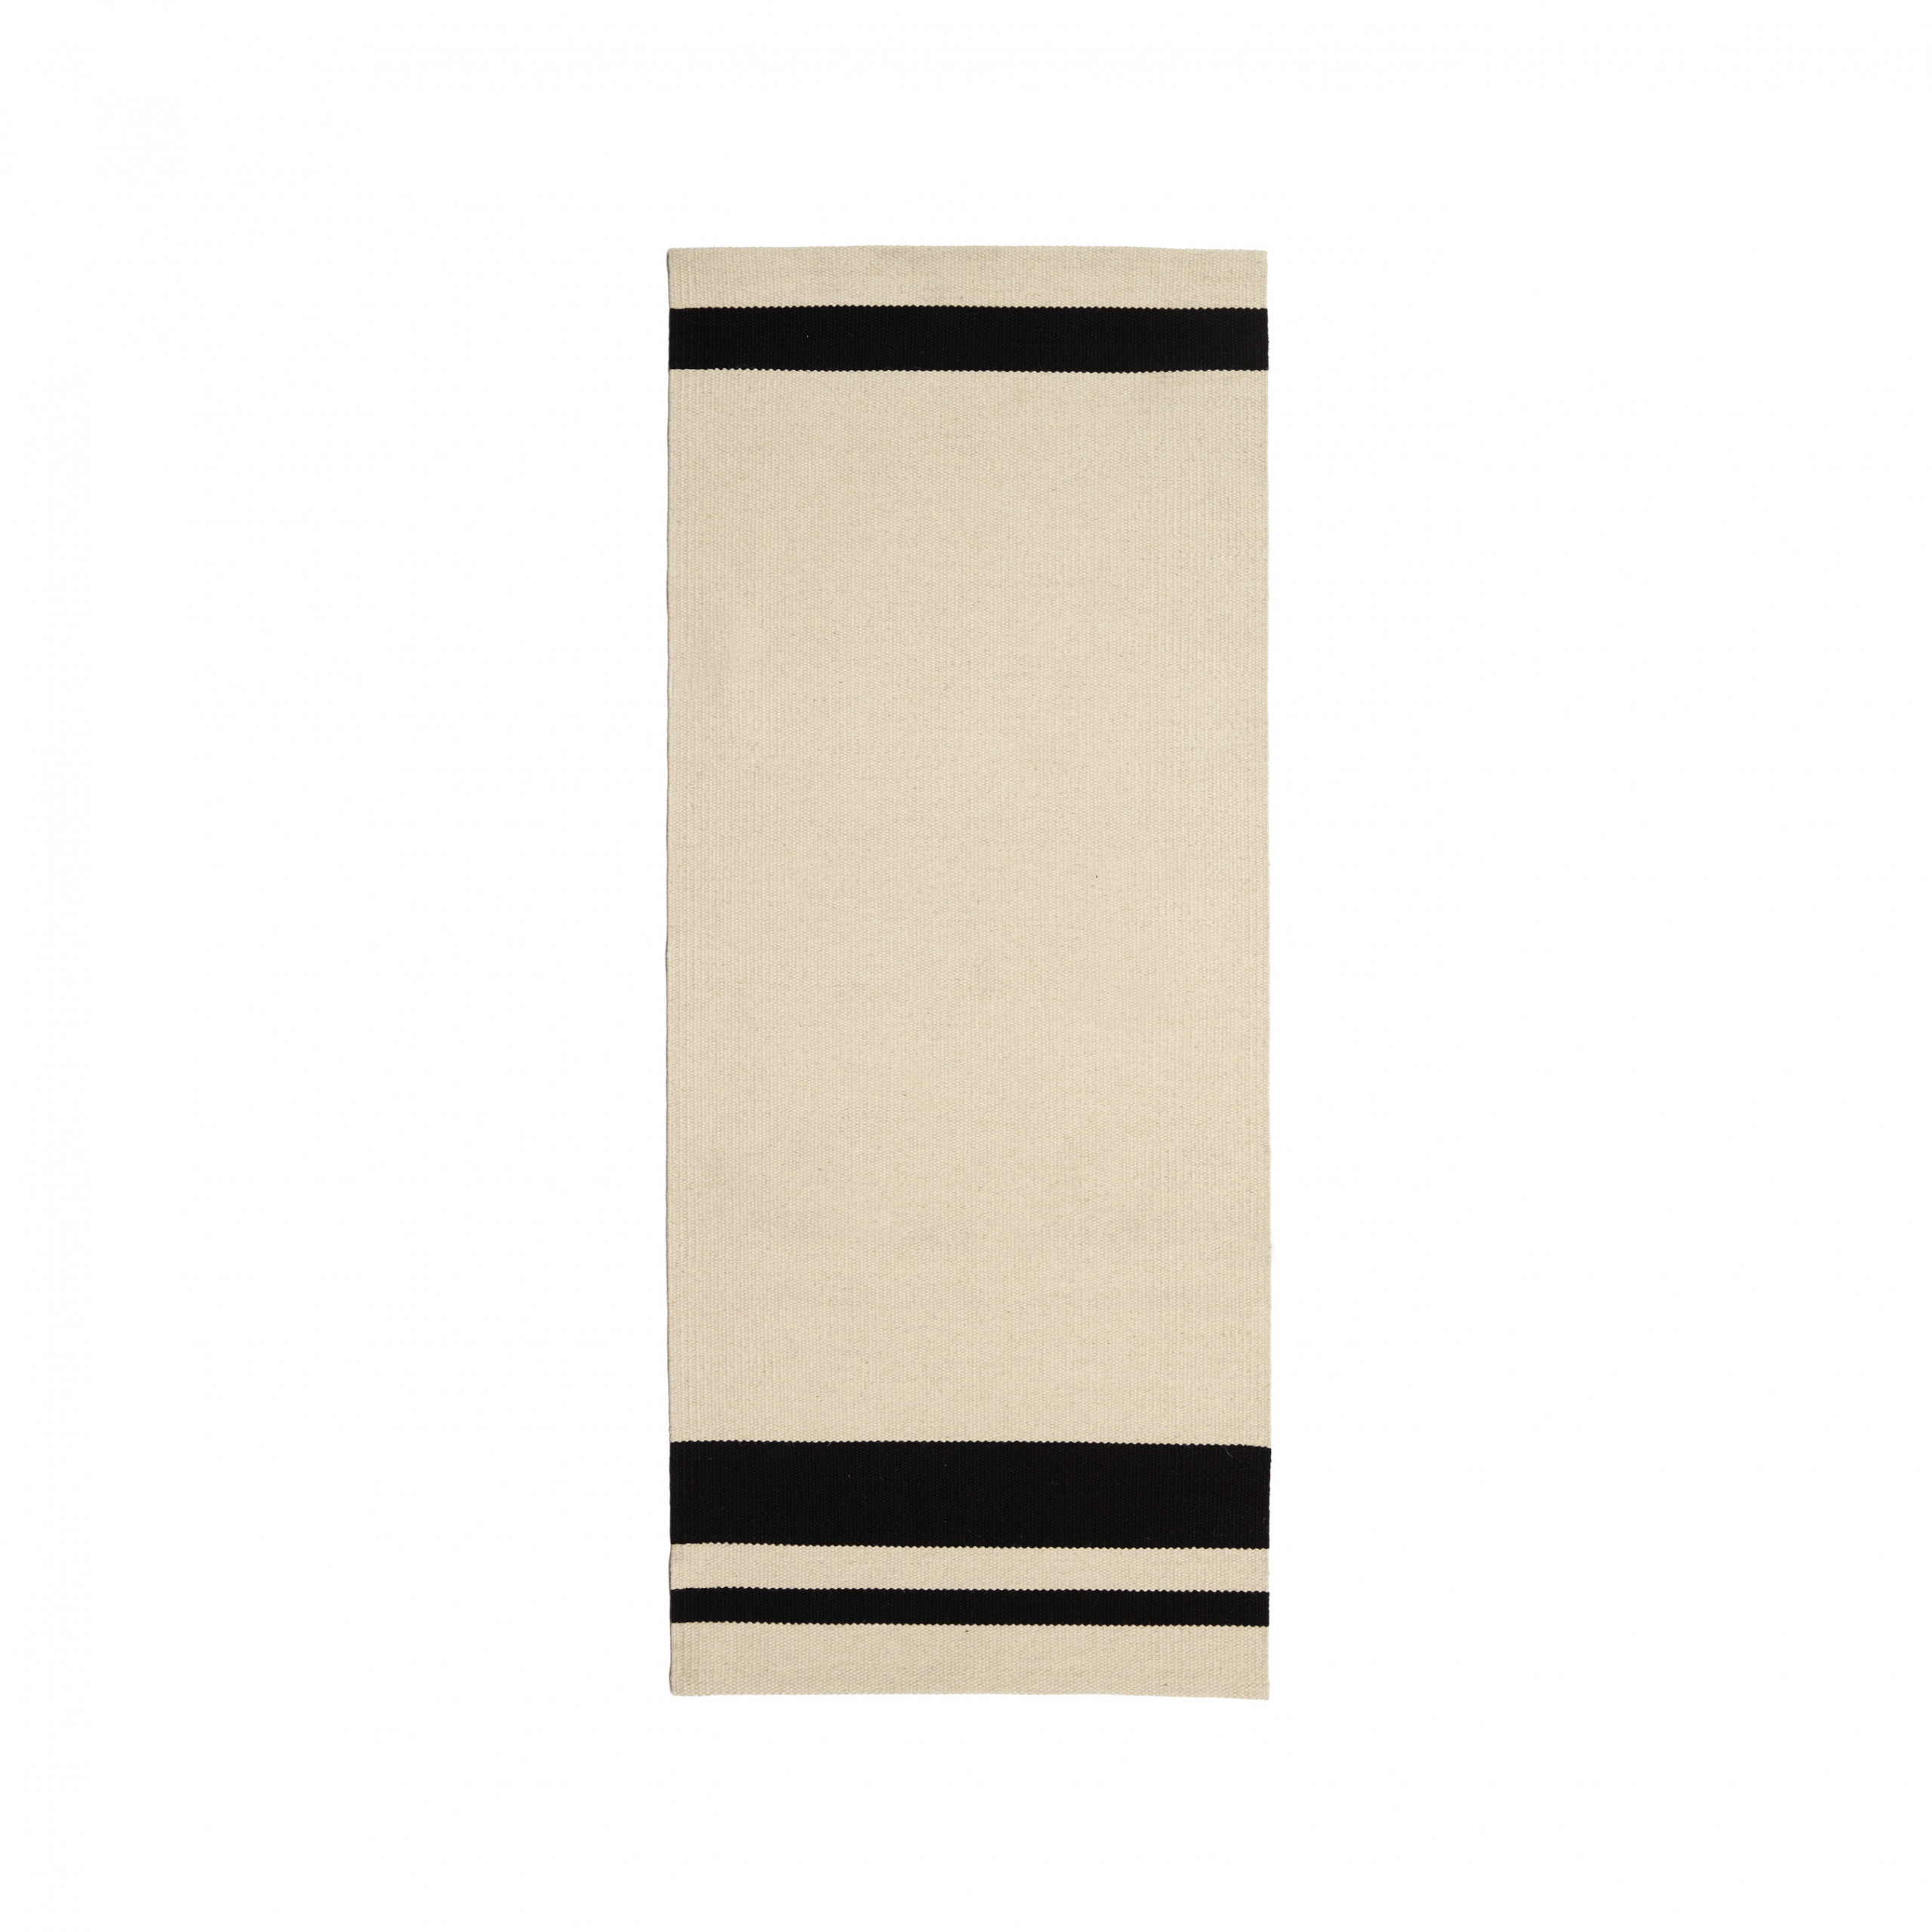 Frenzy Small Rug - The Alfred collection consists of five series (Fran, Frenzy, Lucy, Ivy, Billie) of handwoven minimalist carpets made by Belgian textile designers Marie Mees and Athérine Biasino. Firstly, all carpets are handwoven with a mixture of two top-shelf wools from New Zealand and Portugal, the first offering the right softness and look, the other adding strength. Secondly, the designers envision a minimalist aesthetic that resonates timelessness and not trendiness. In fact, hyped colours are fiercely avoided. By offering highly durable and supremely sober carpets, the Alfred Collection honours the archetype of the carpet, pure in form and in function, making it the perfect textile for the minimalist interior of the design admirer. Composition of the carpet is a mixture of Merino, New Zealand and Beira Alta (Portuguese wool).  | Matter of Stuff